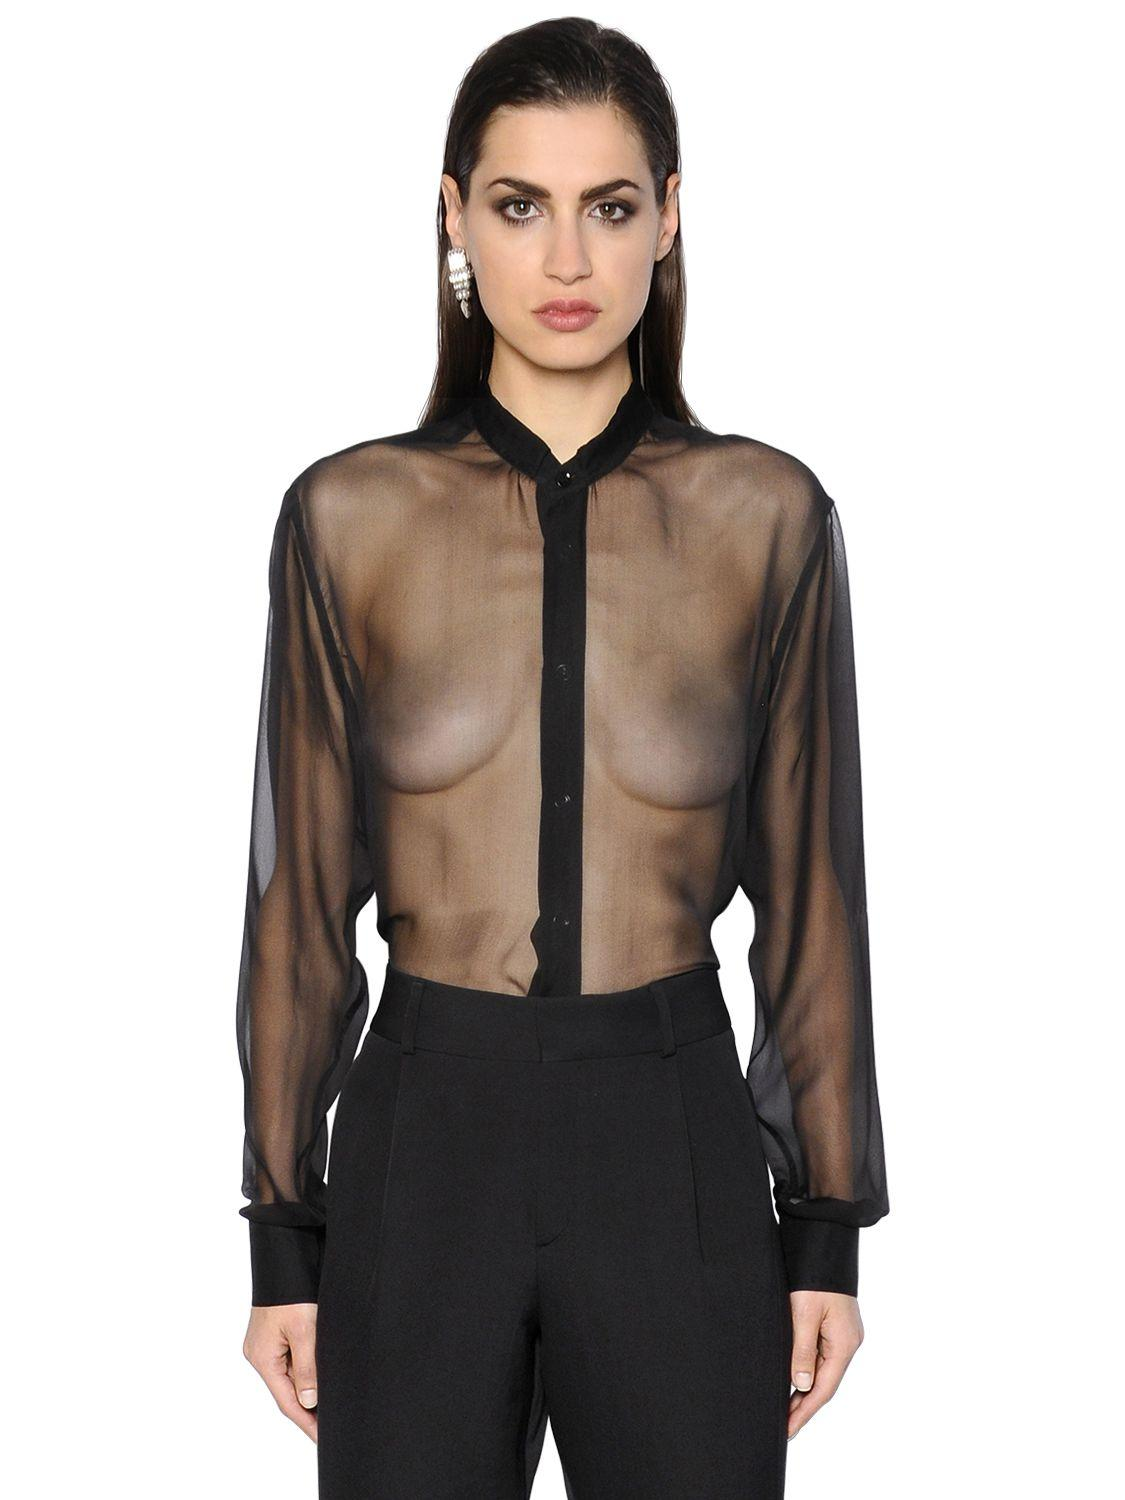 Find great deals on eBay for sheer shirt. Shop with confidence.